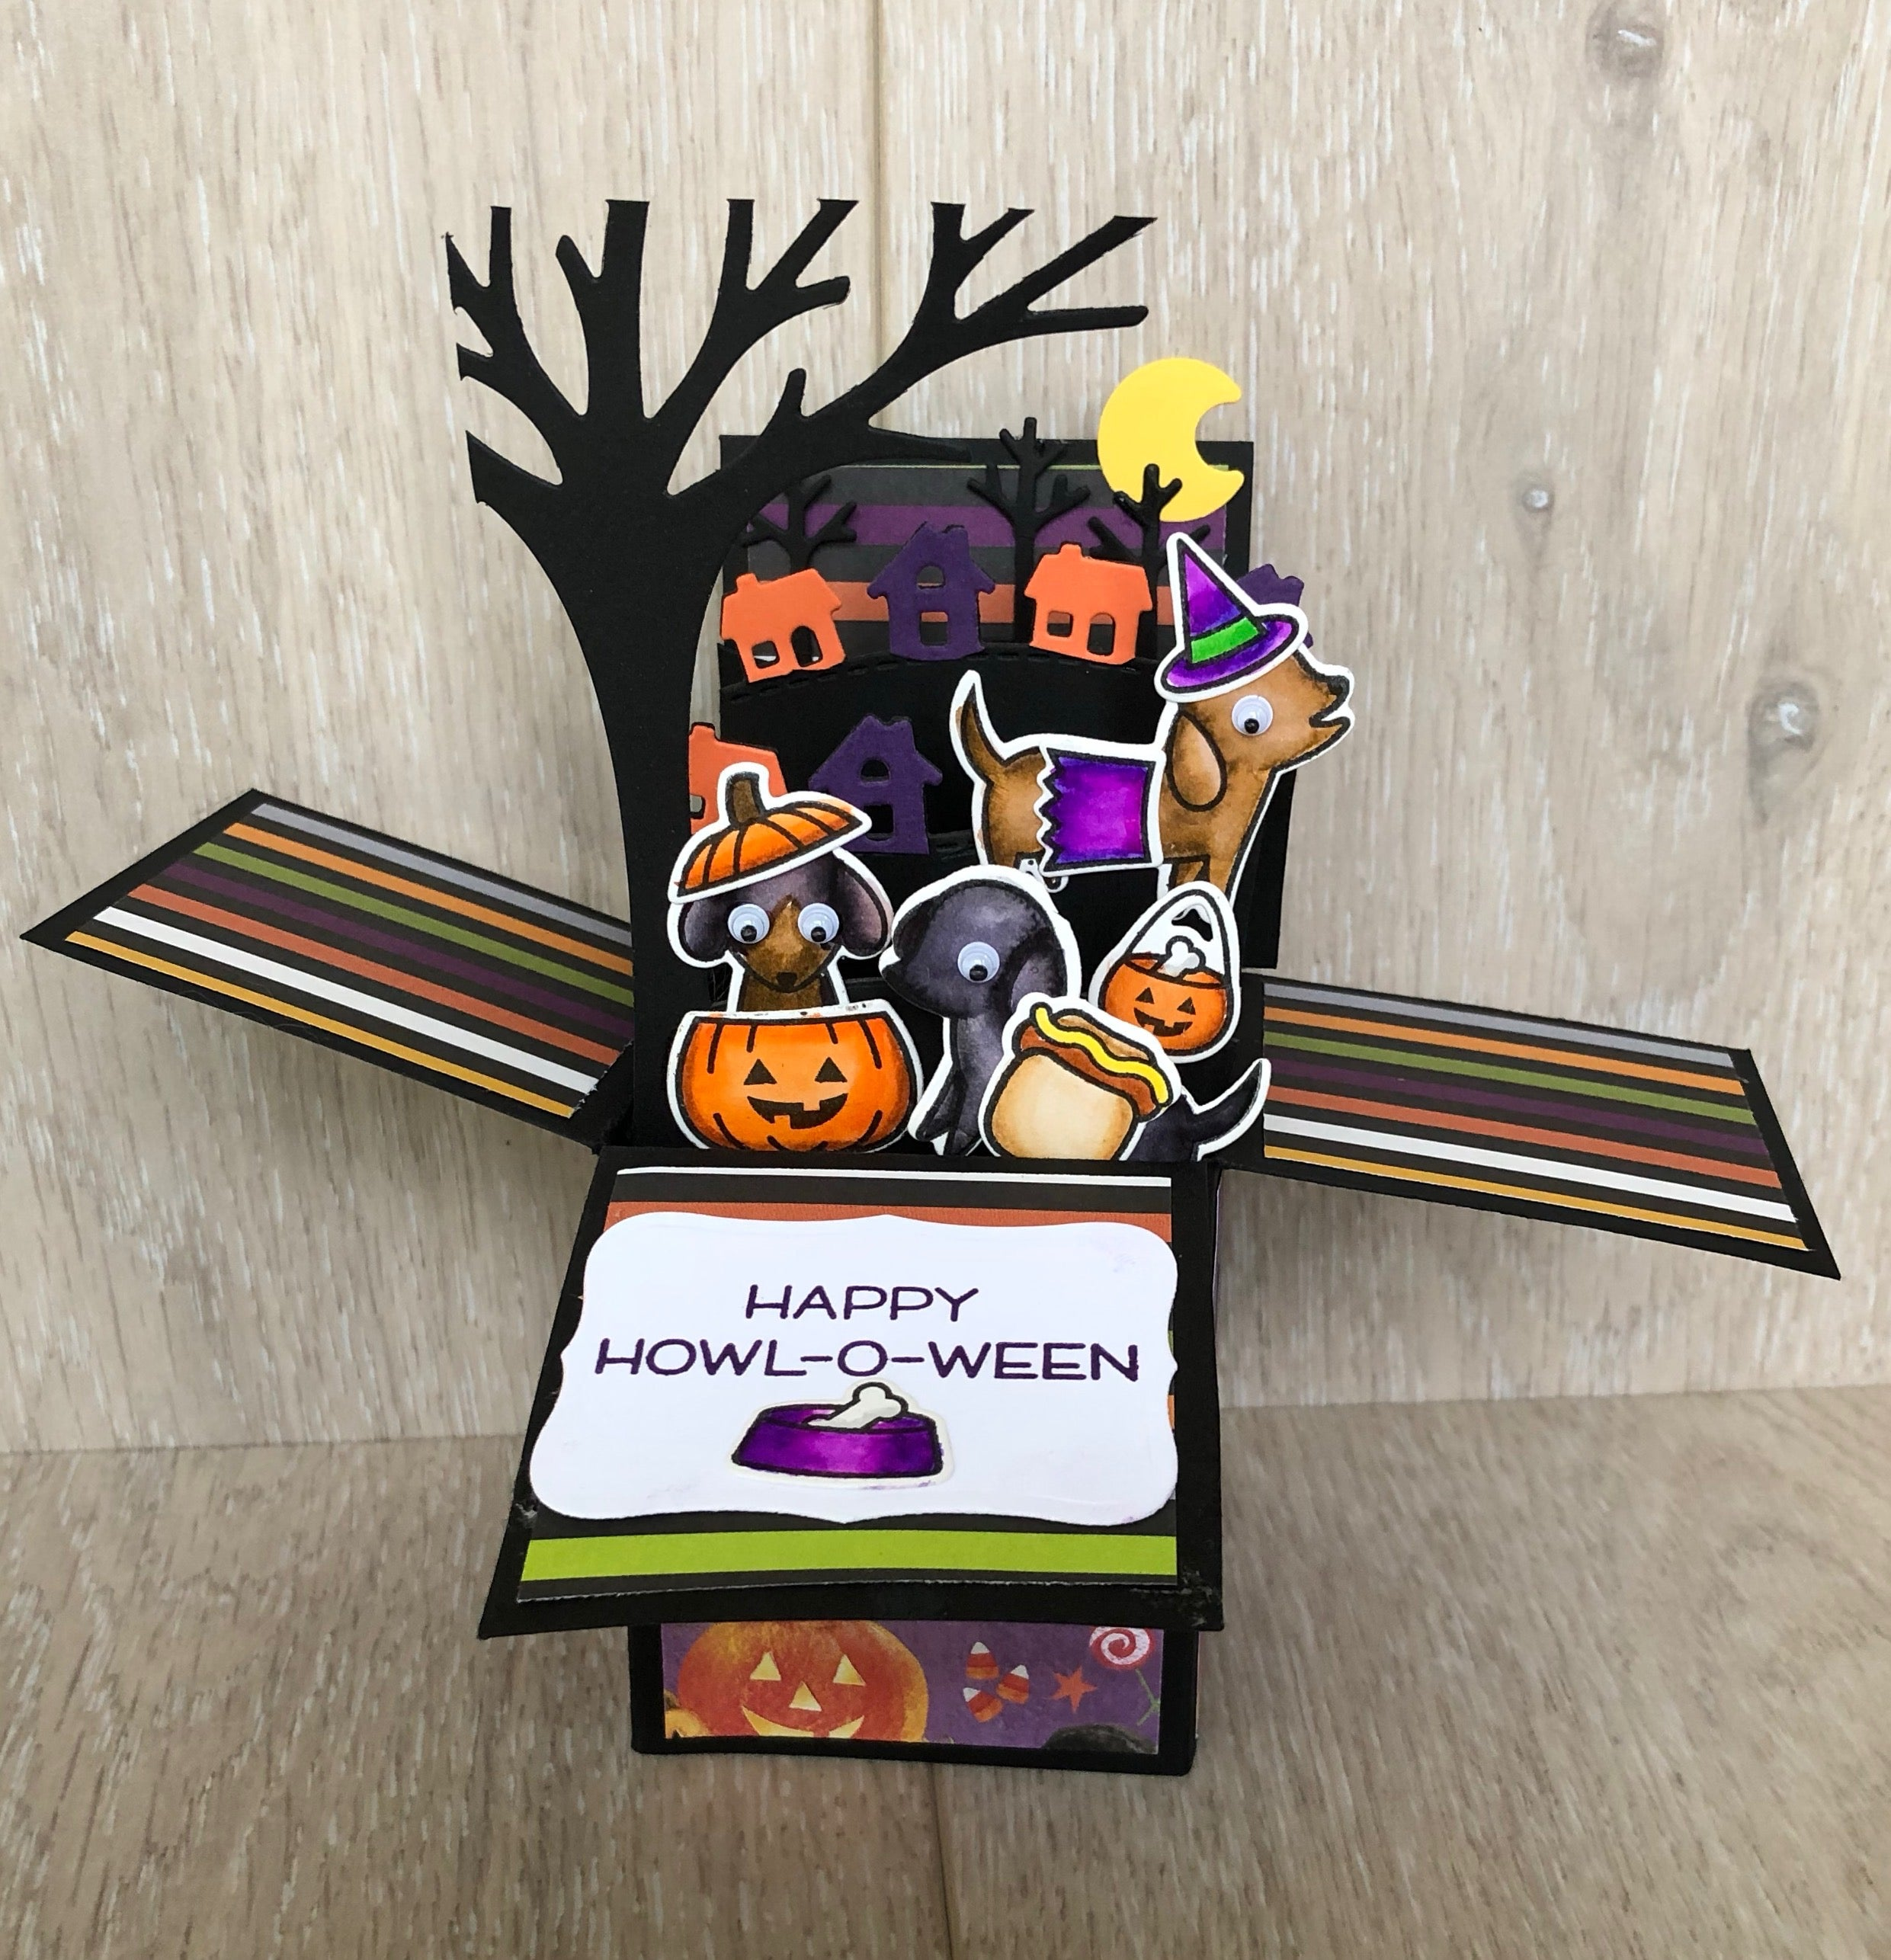 Lawn Fawn Howl-oween and Meowloween Cards